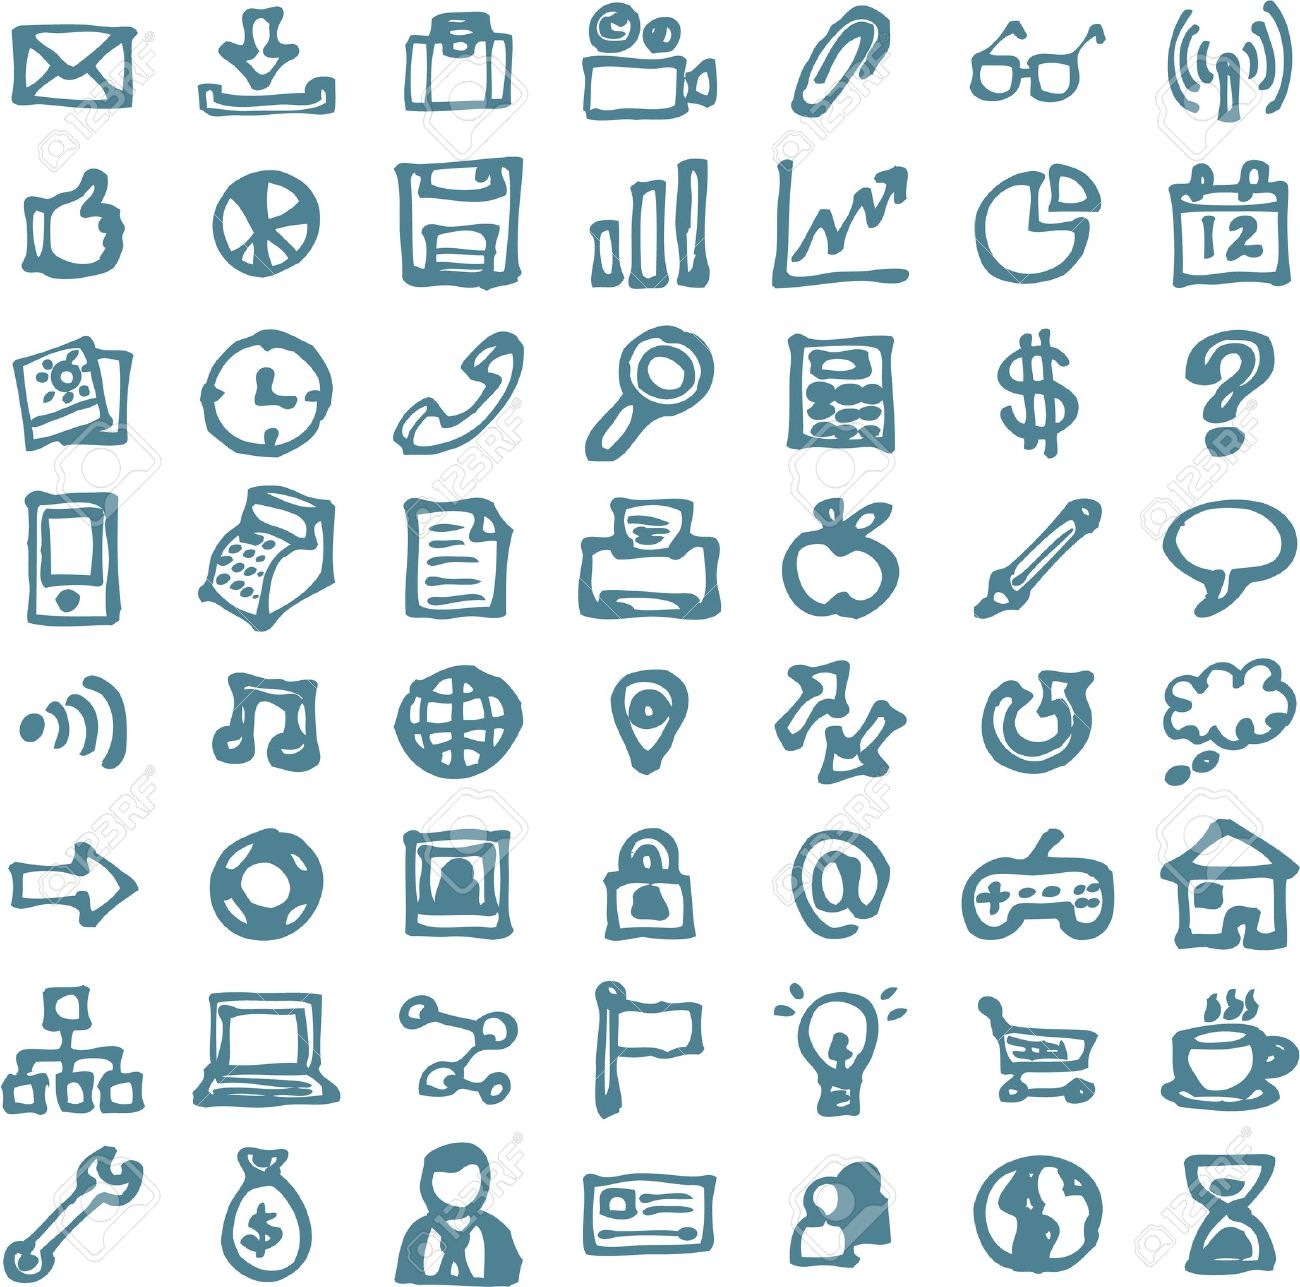 Blue business hand drawn doodles highligher icons - 32287742